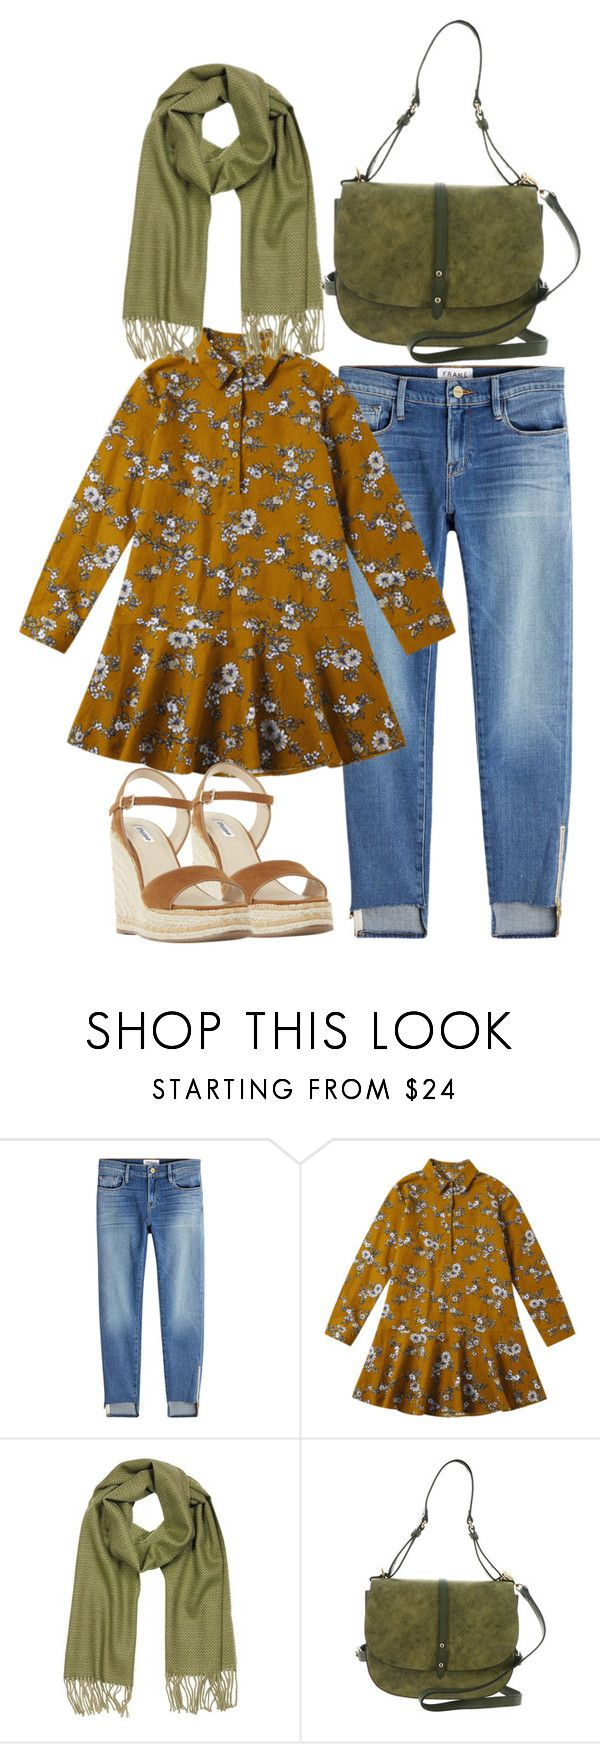 """Hijab Outfit"" by linnaprahayu on Polyvore featuring Frame, Mila Schön, Steve Madden and Dune"